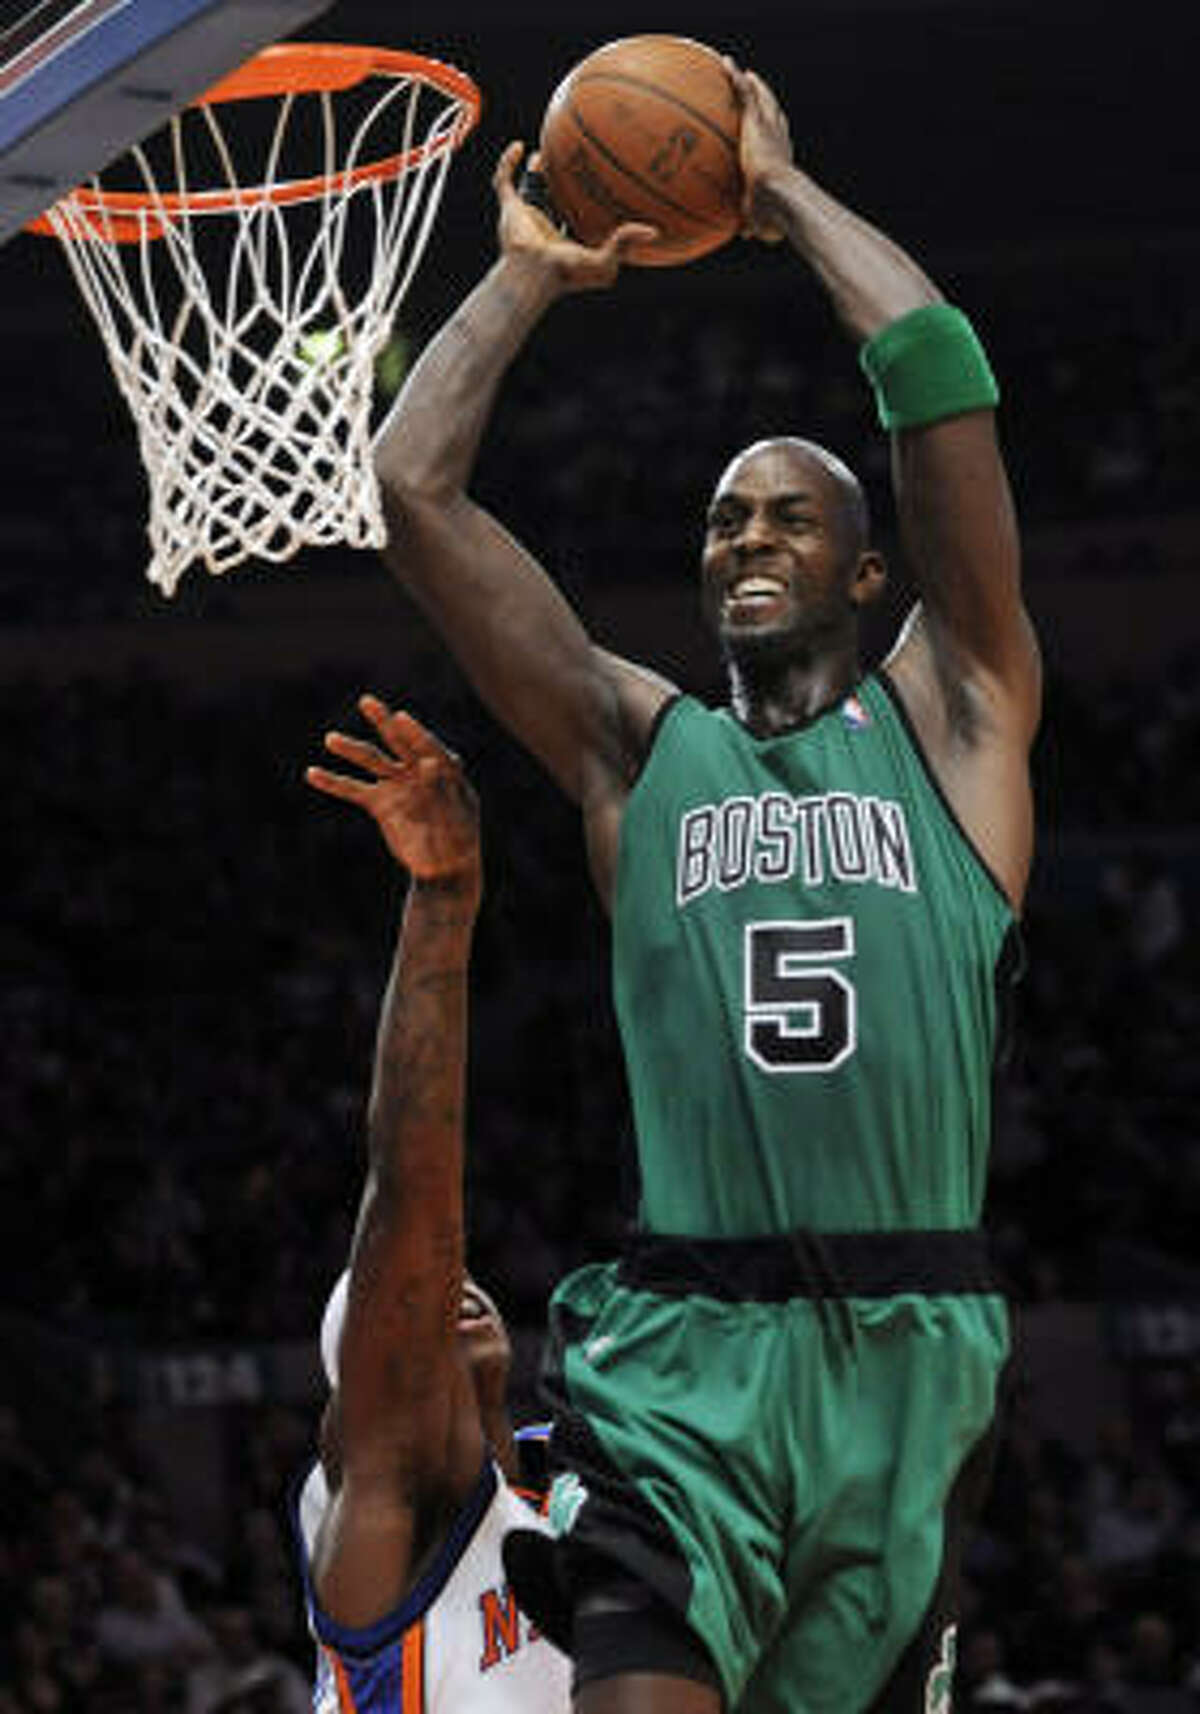 NBA: Kevin Garnett The Celtics power forward's $24.8 million topped all hoopsters, according to USA Today's data, but he was forced to miss the playoffs and Boston's second-round exit.